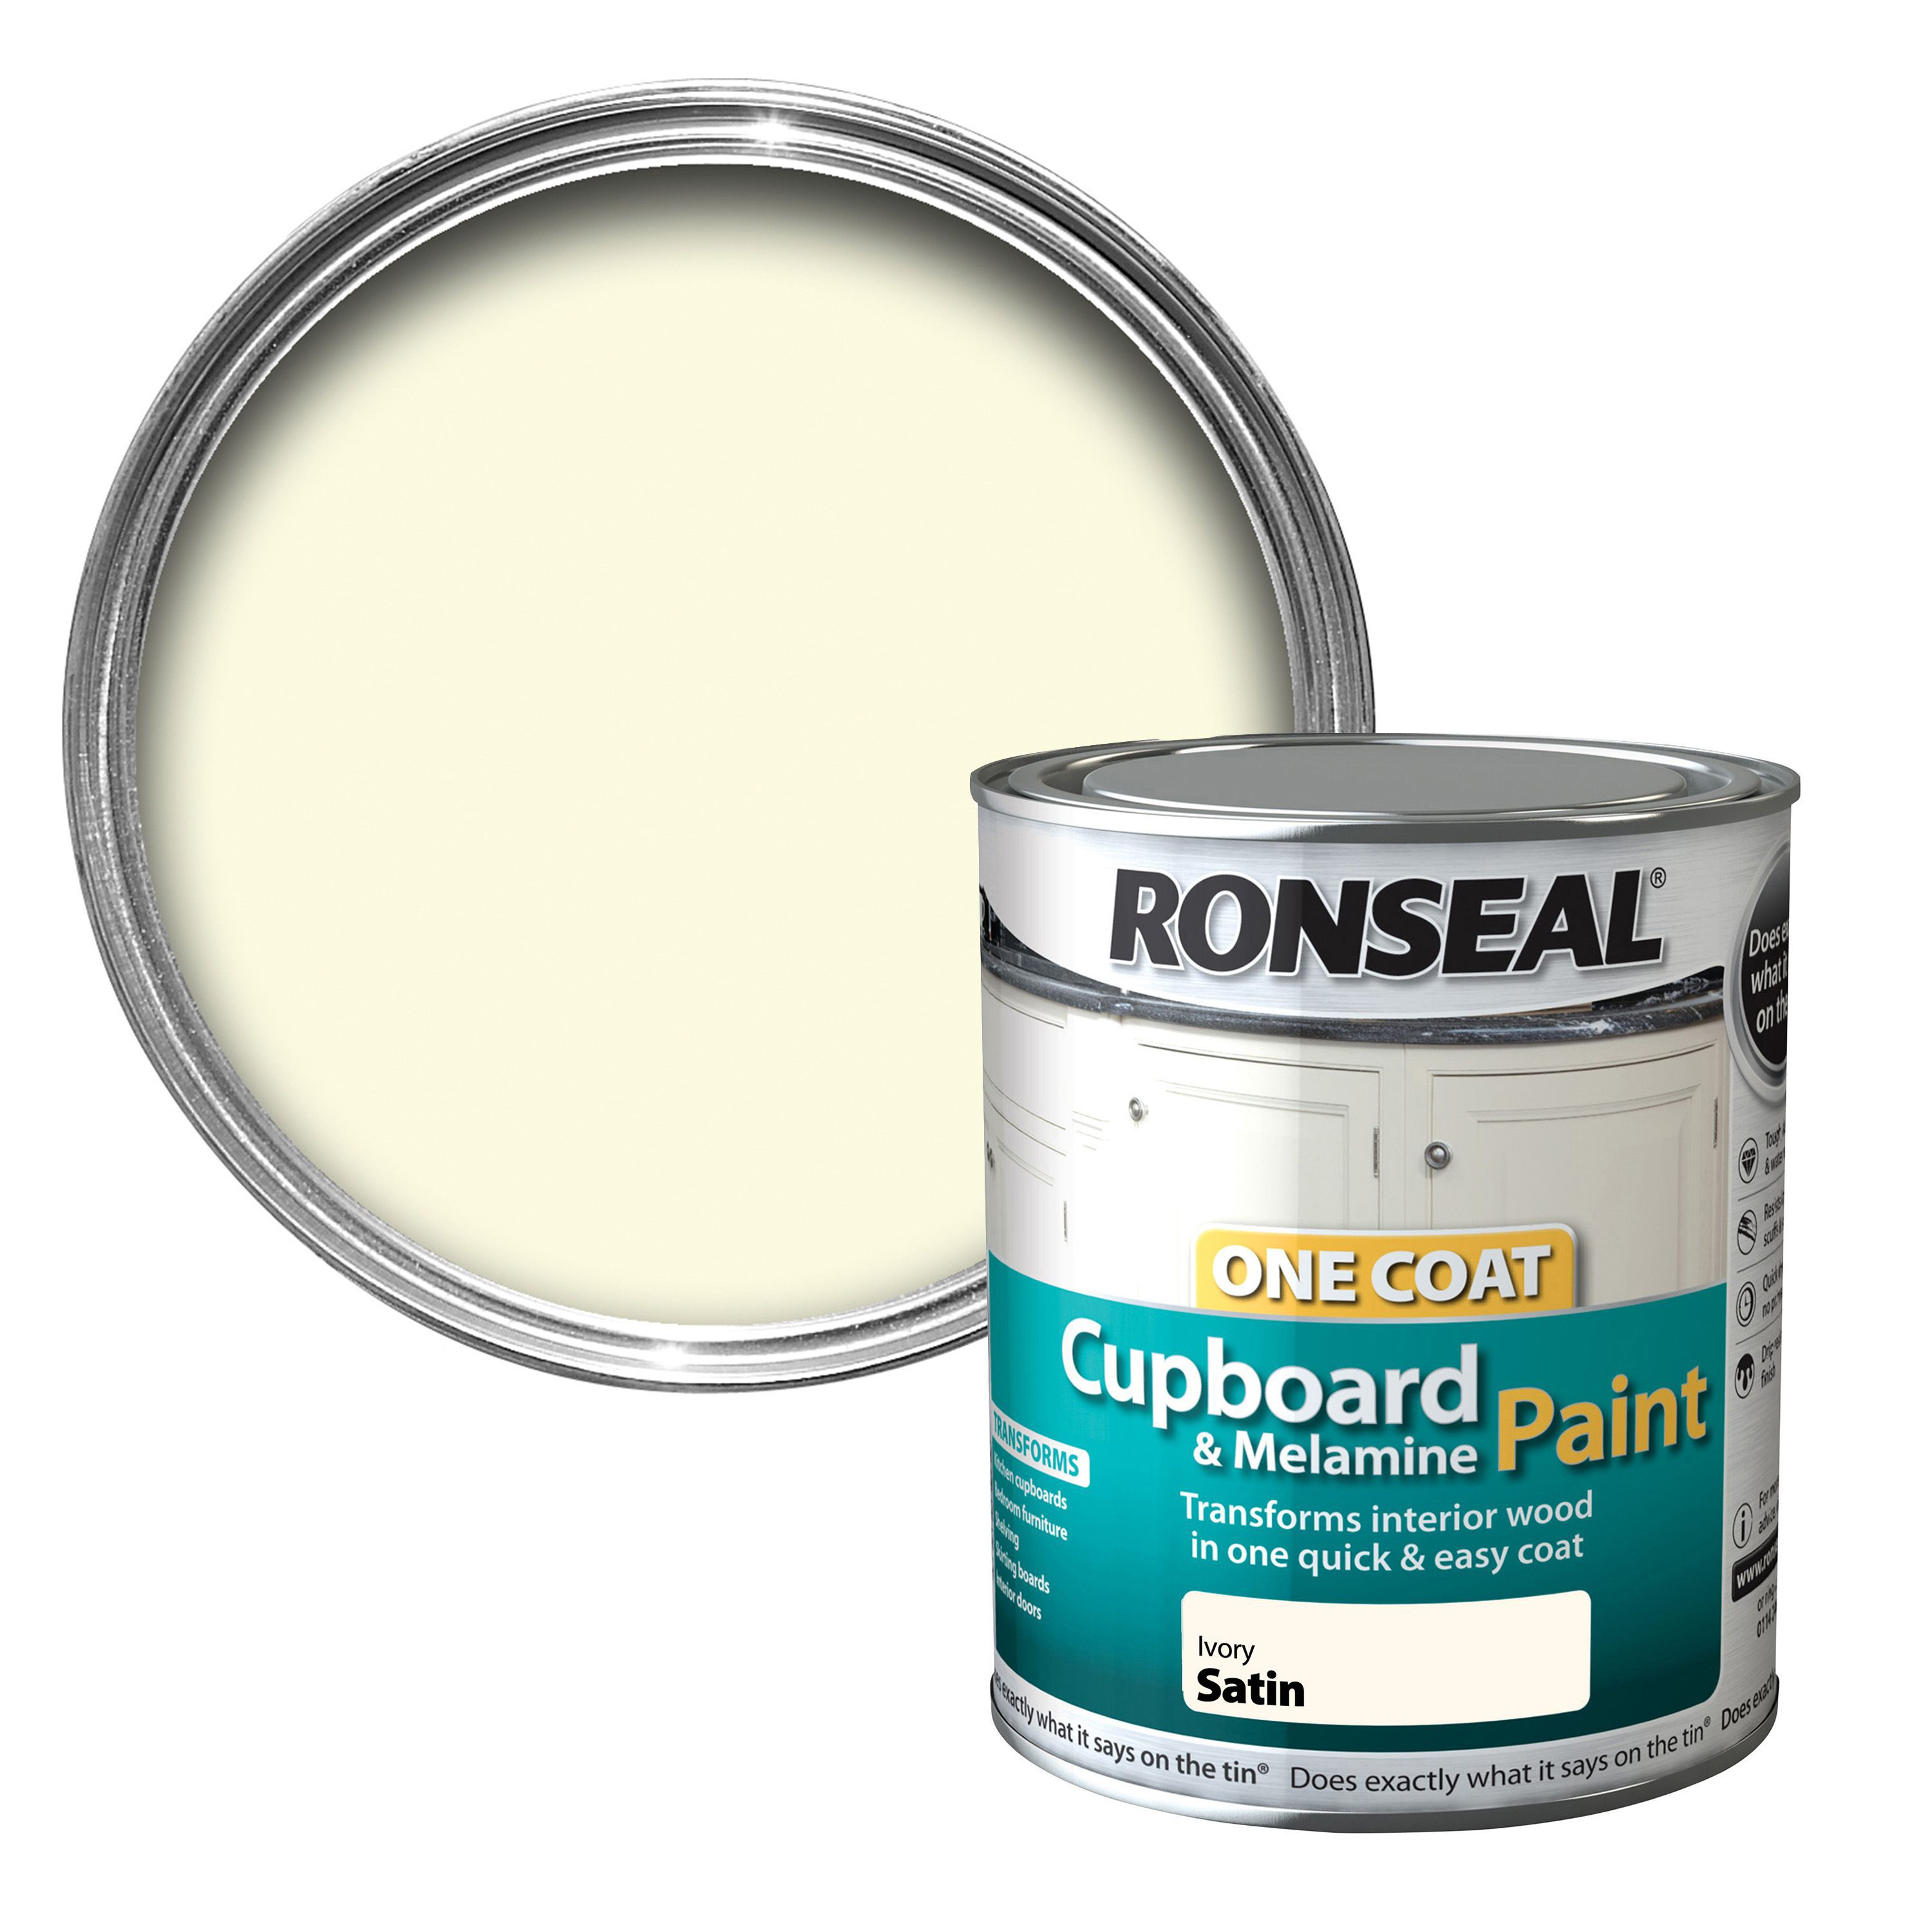 ronseal one coat ivory satin cupboard paint 750 ml departments